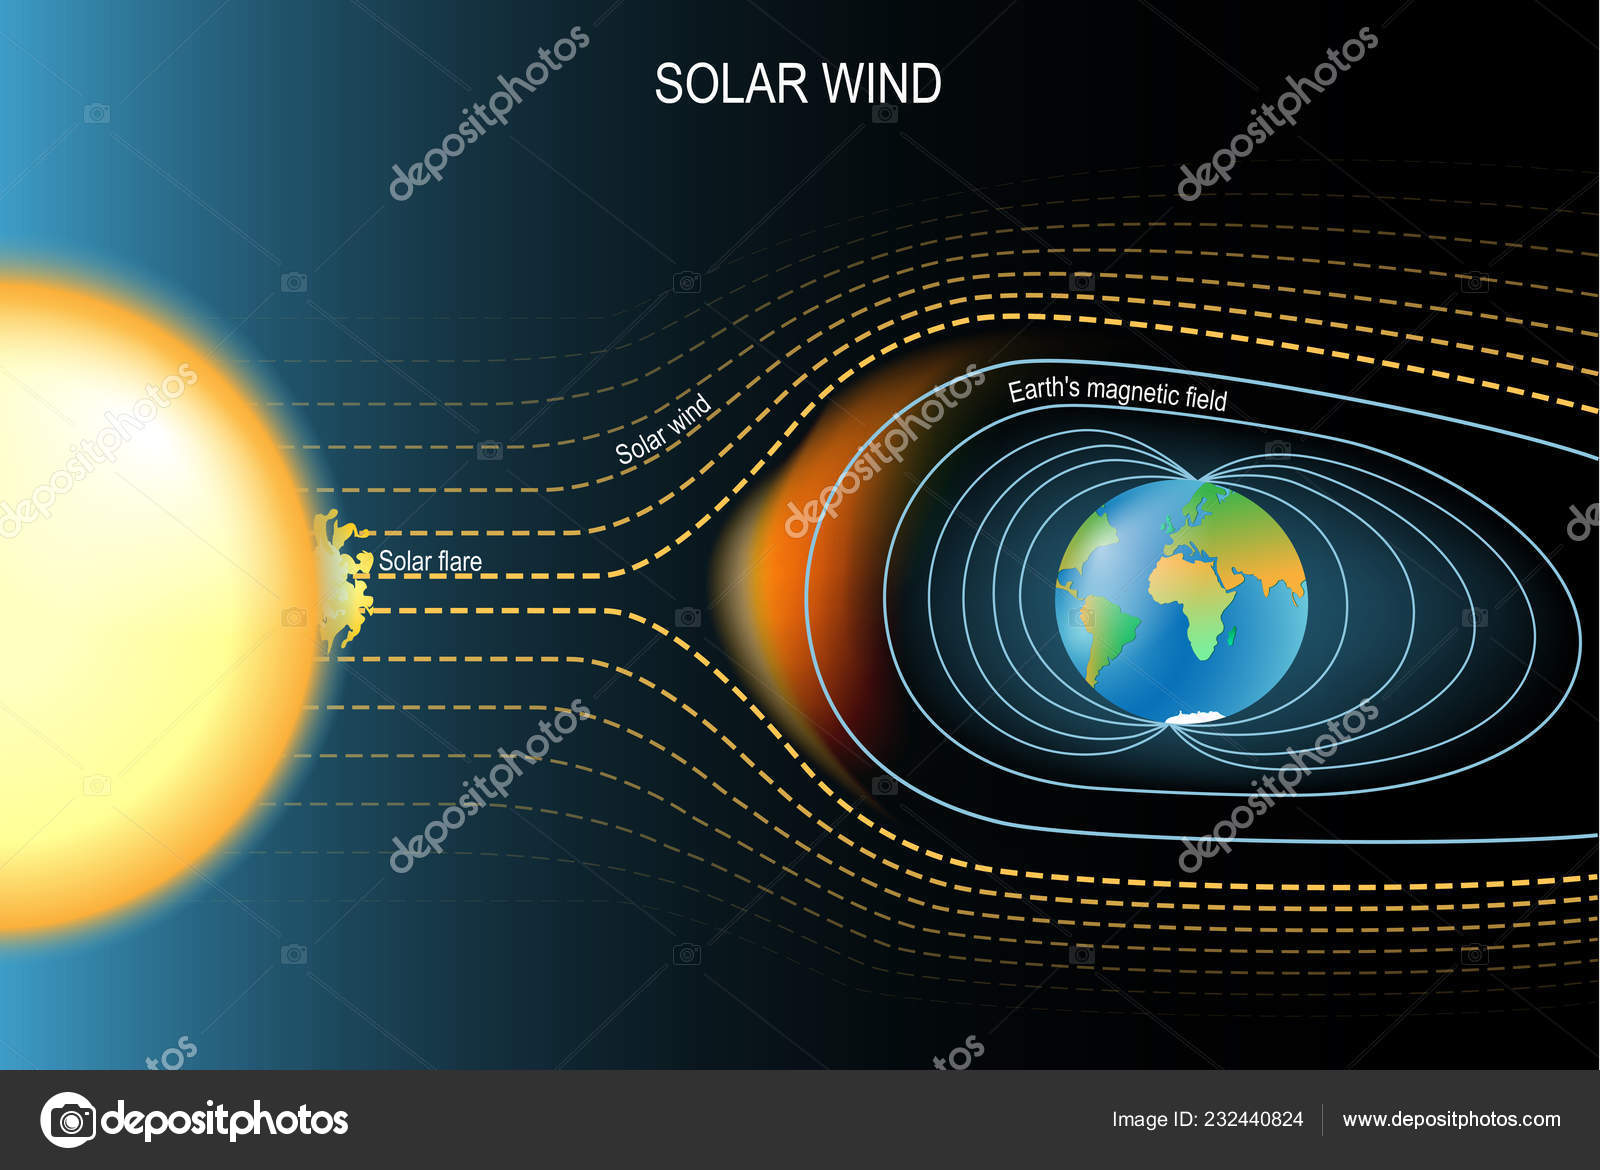 Marvelous Magnetic Field Protected Earth Solar Wind Earth Geomagnetic Field Wiring Cloud Tziciuggs Outletorg